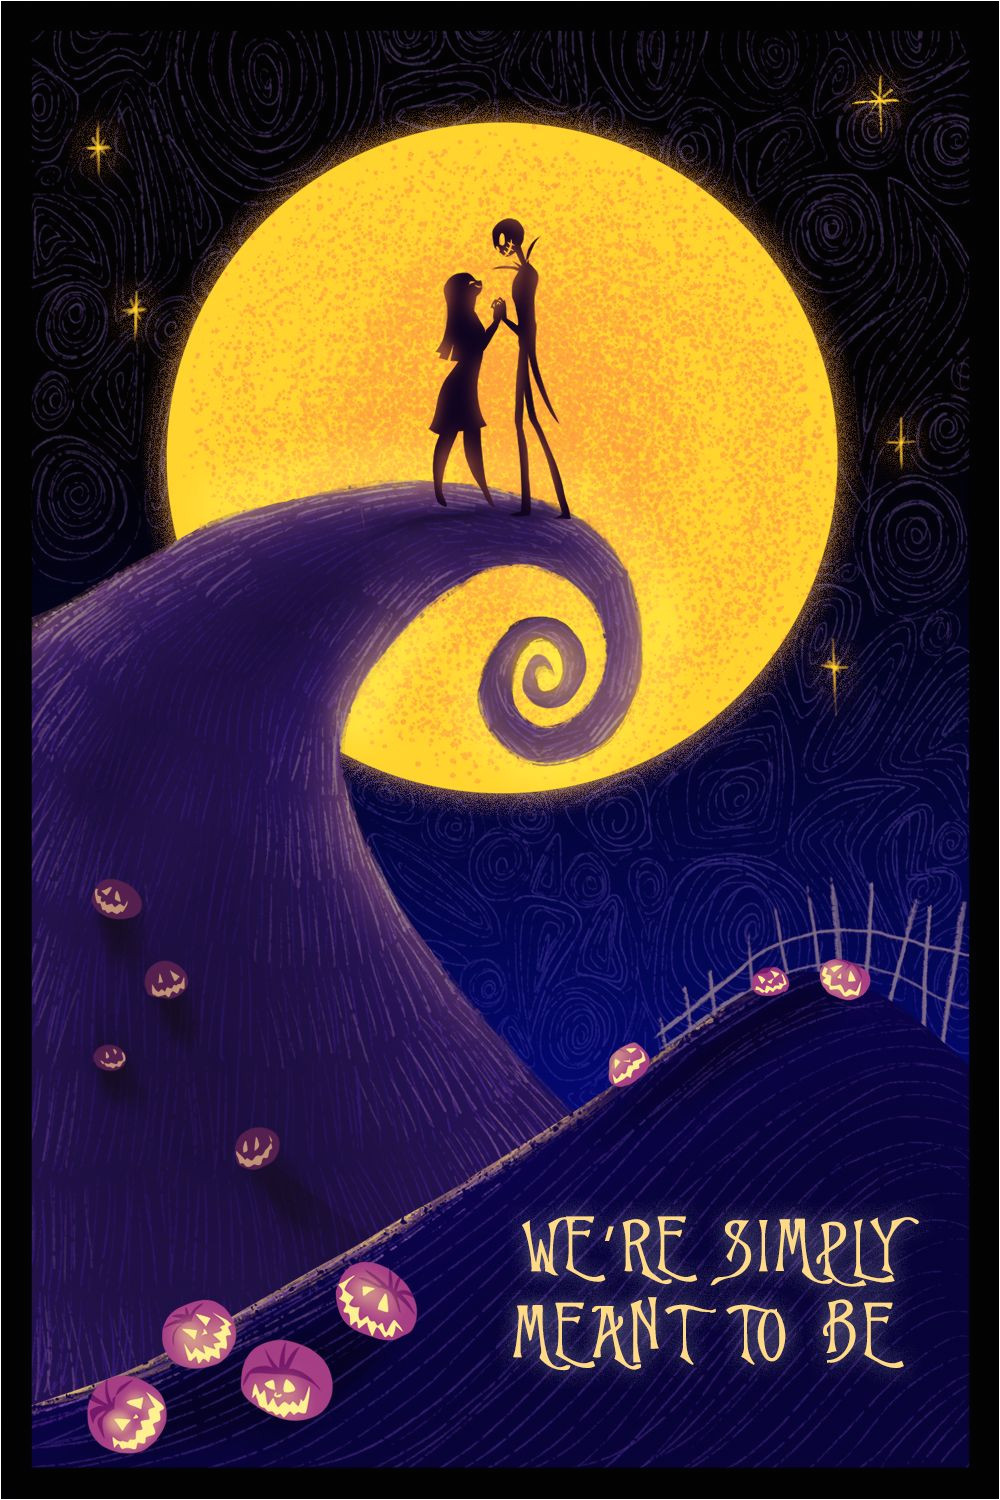 Jack and Sally Valentine Card Adorable Disney Valentine's Day Cards